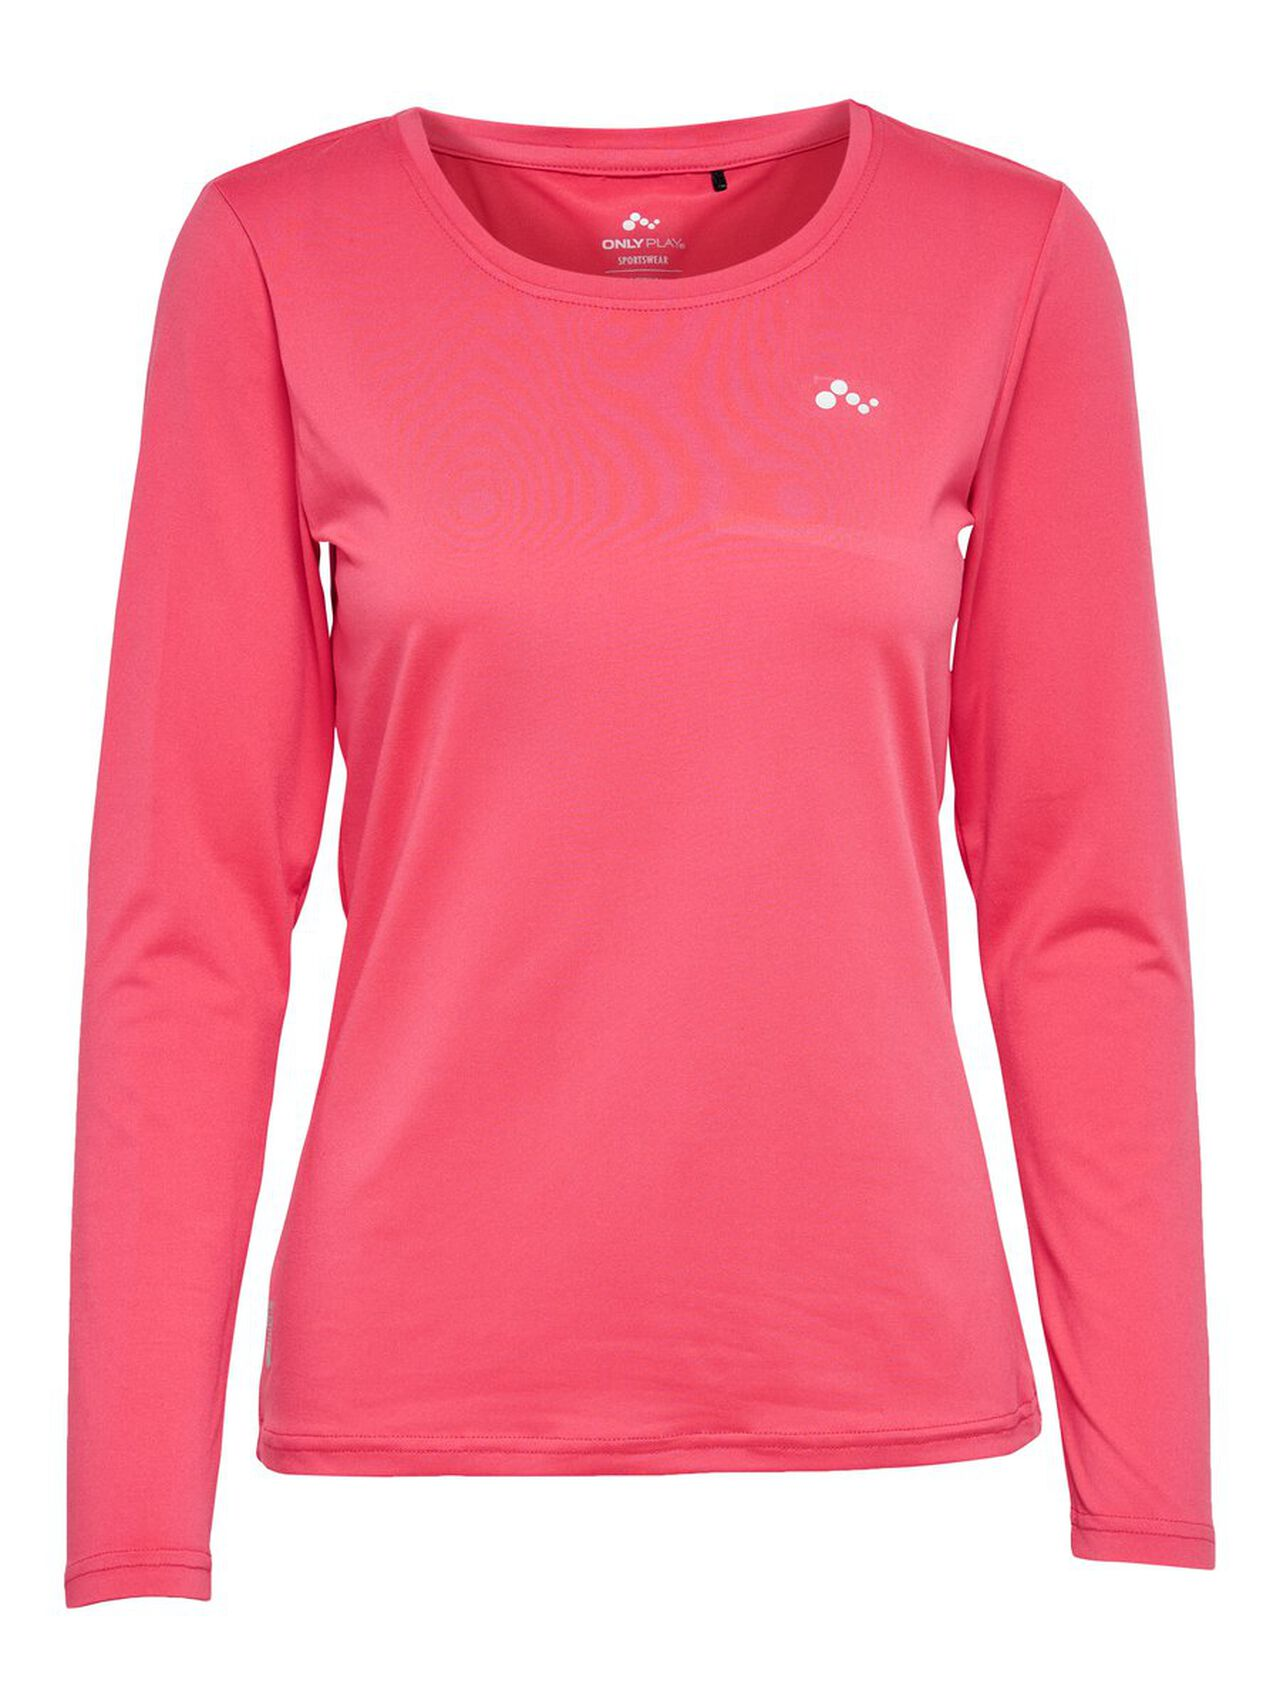 ONLY Long Sleeved Sports Top Women Pink